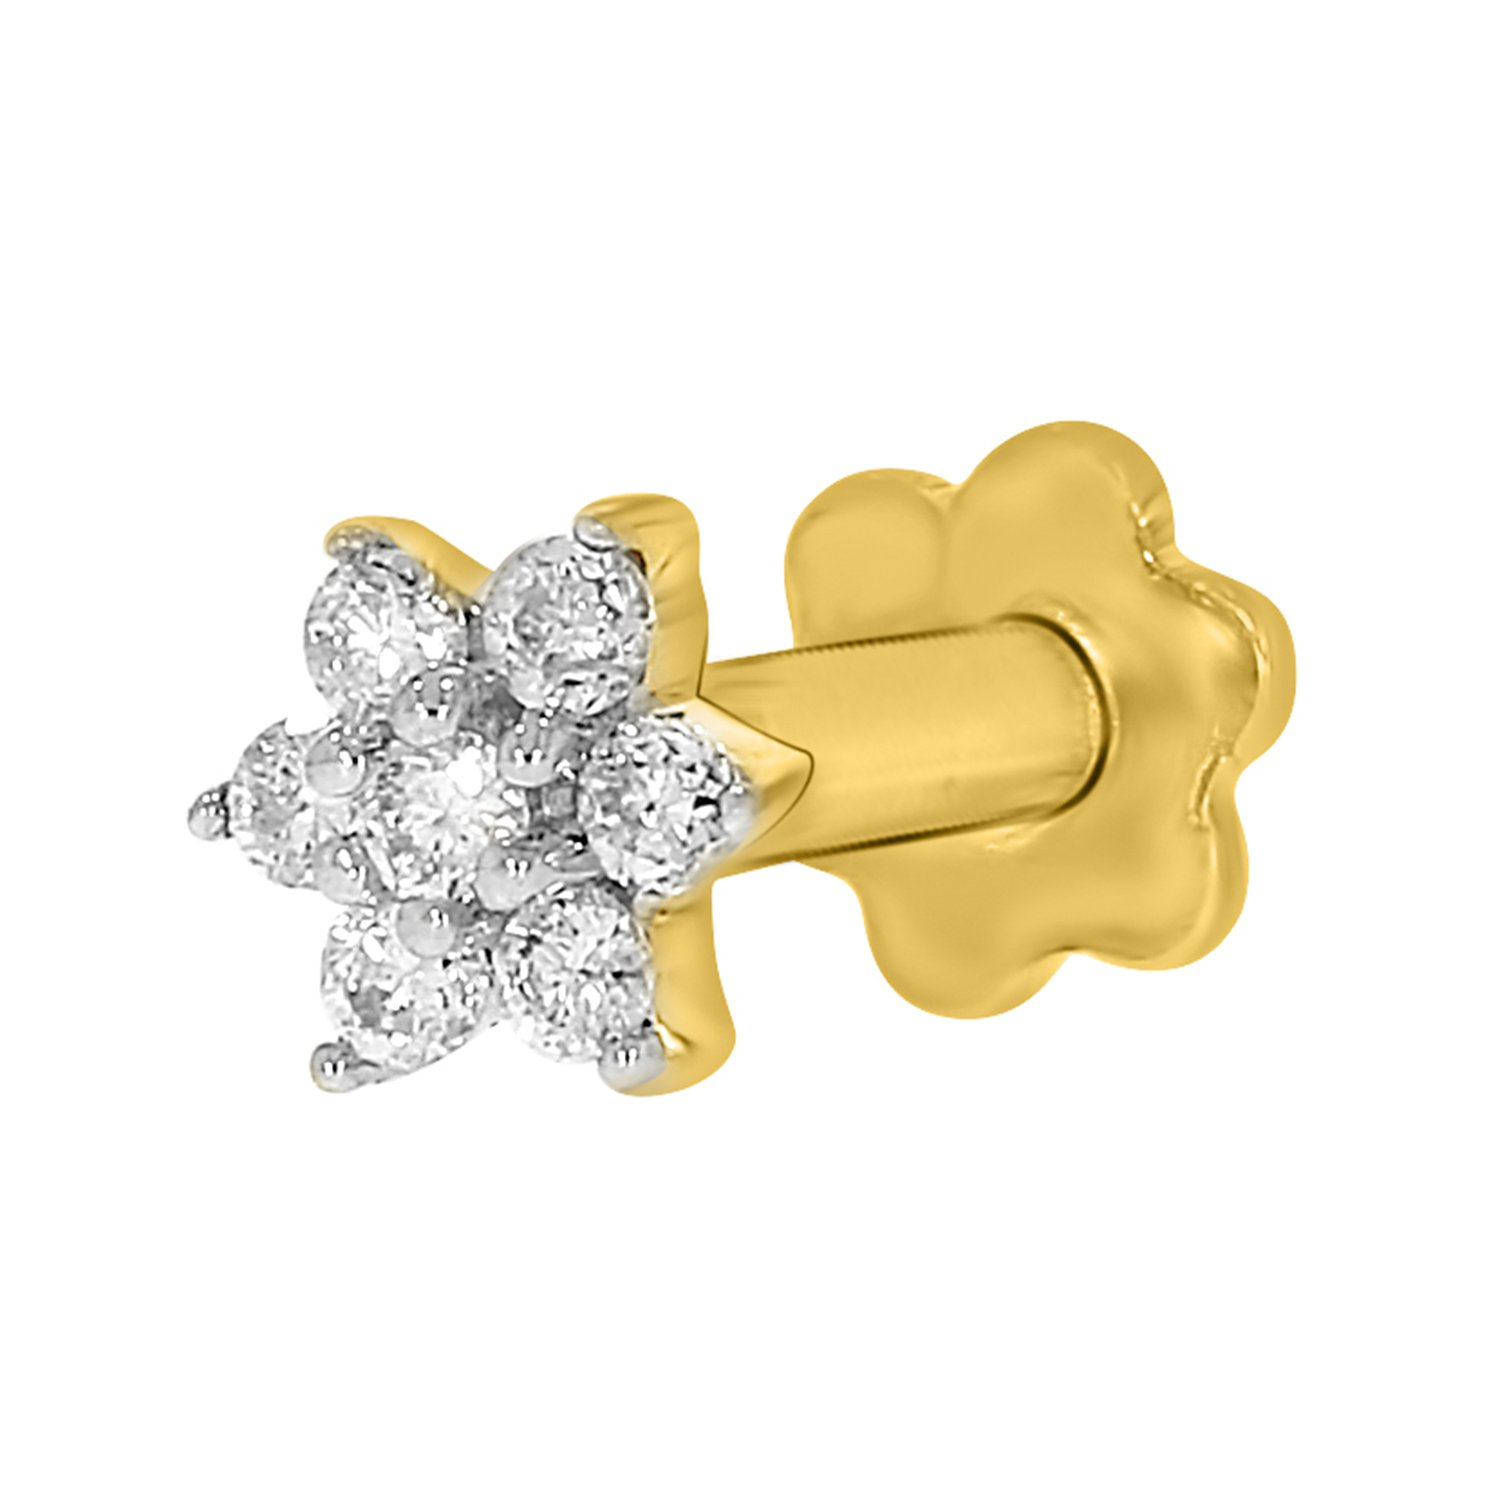 Diamond Flower Nose Piercing Pin Screw Ring Stud 4.25mm 14k Yellow Gold 19 Guage (GHColor/I1-I2Clarity)